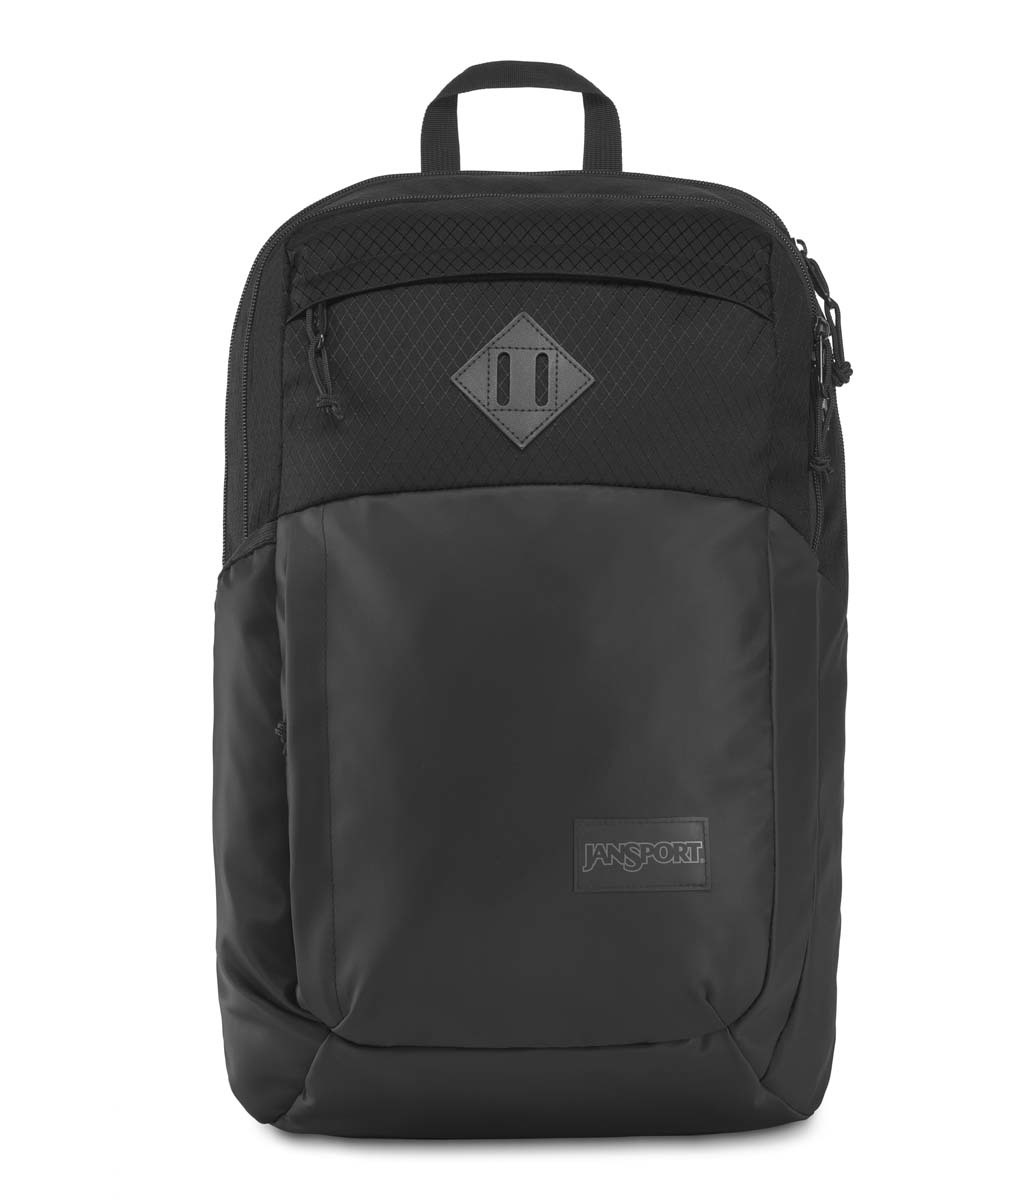 【公式】JANSPORT リュック ジャンスポーツ FREMONT - BLACK MATTE COATED 600D - JS0A3P1961E